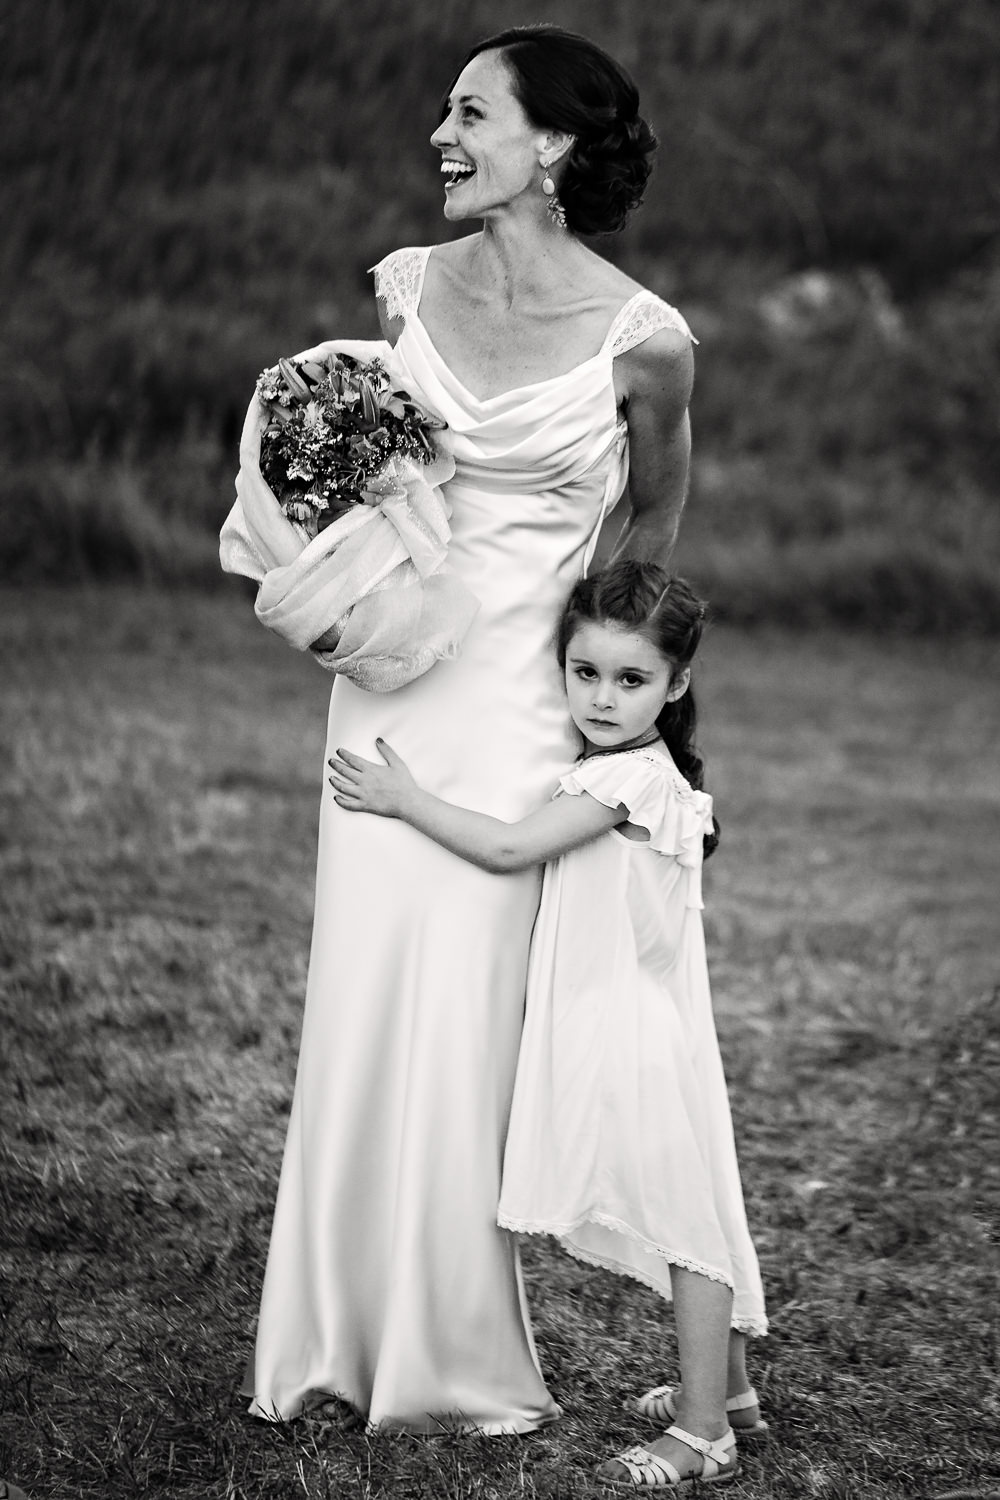 mcleod-montana-wedding-bride-flowergirl.jpg